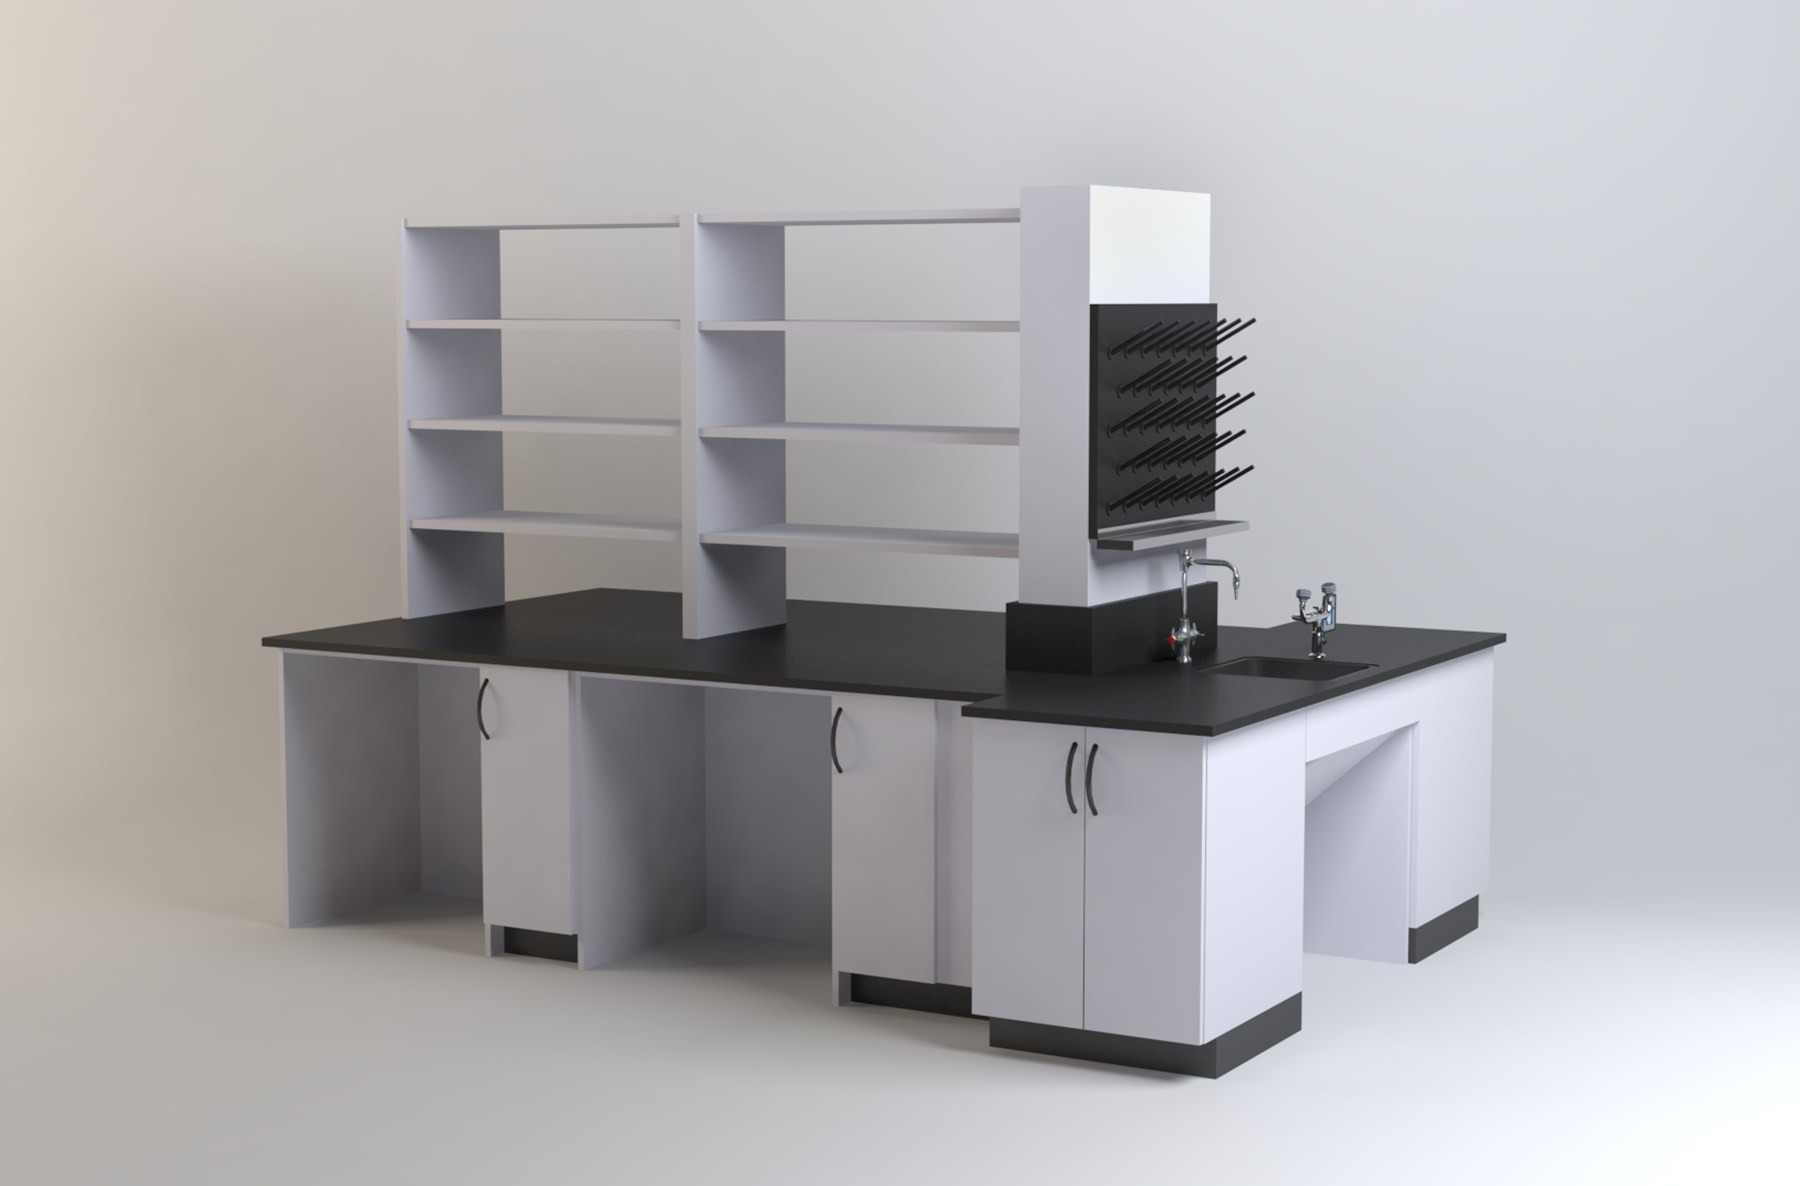 Ada Sink Revit Family Sinks Ideas